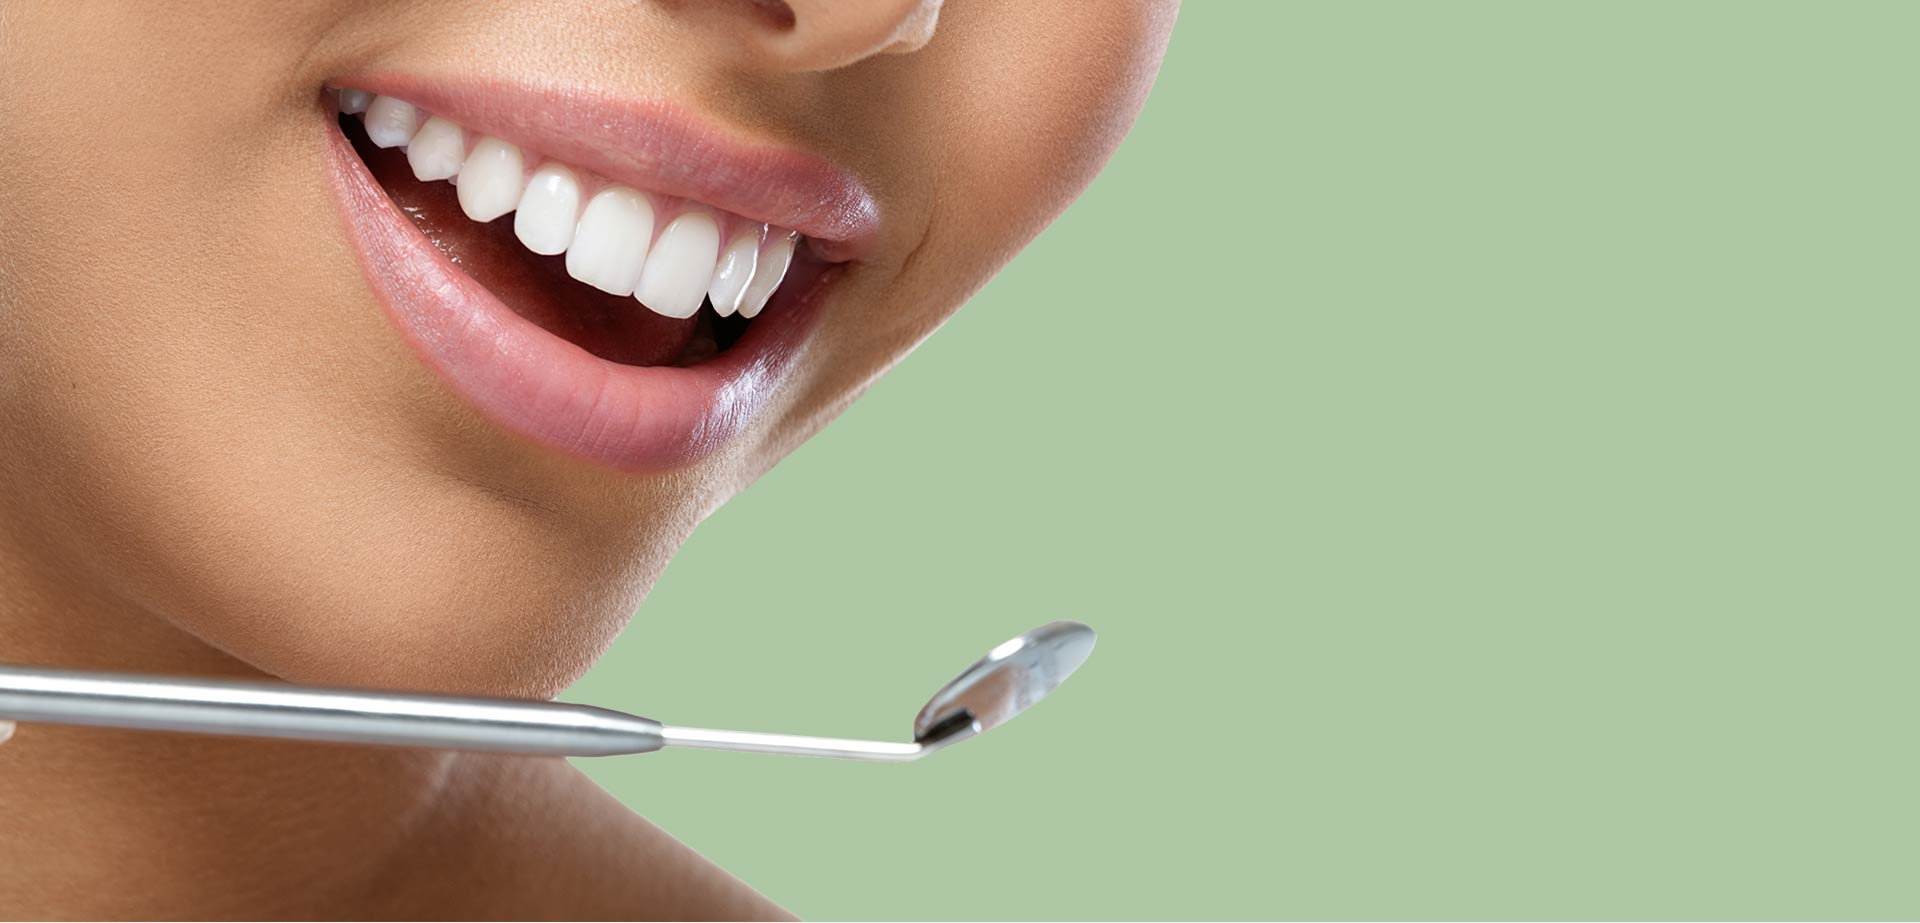 DENTISTRY-Get that dazzling smile you've been dreaming of with our selection of Oral and Dental care.